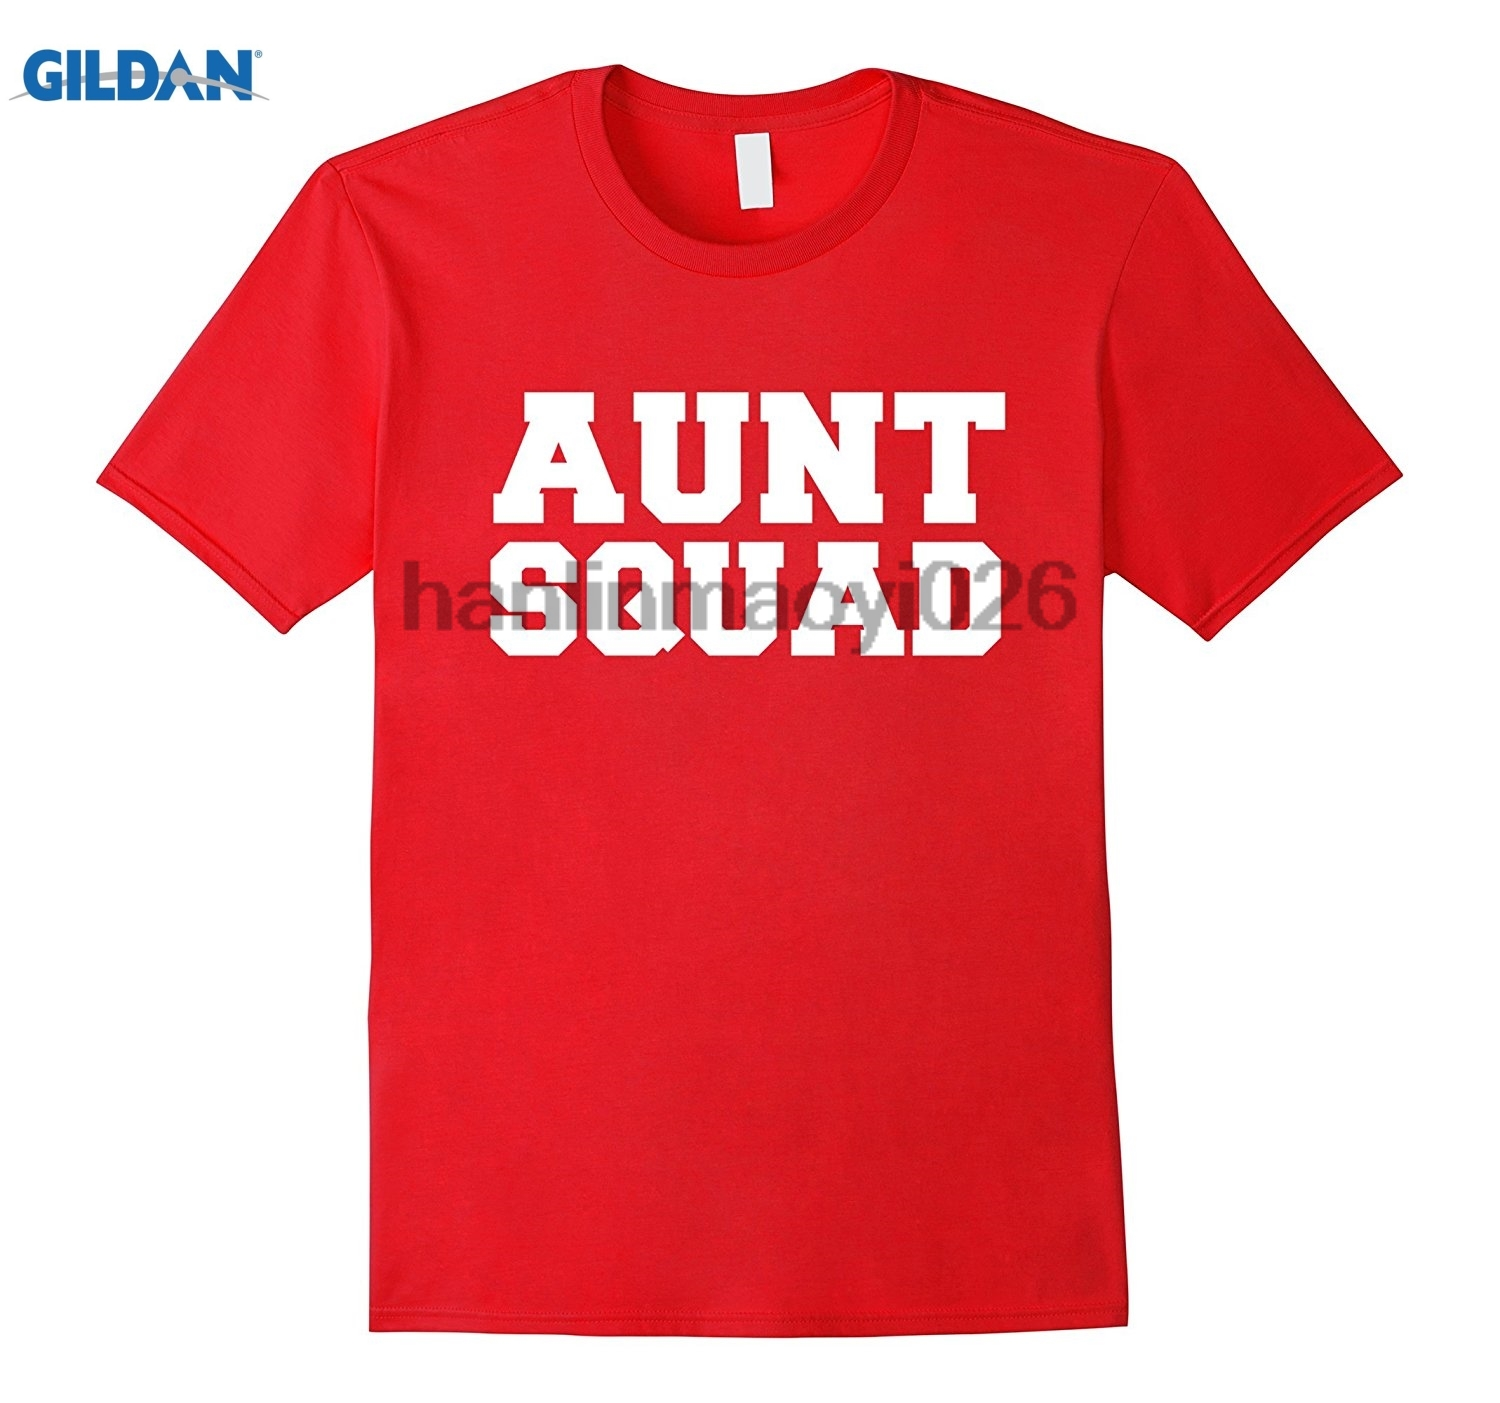 GILDAN Aunt Squad Funny T-shirt Favorite Auntie Gift Mothers Day